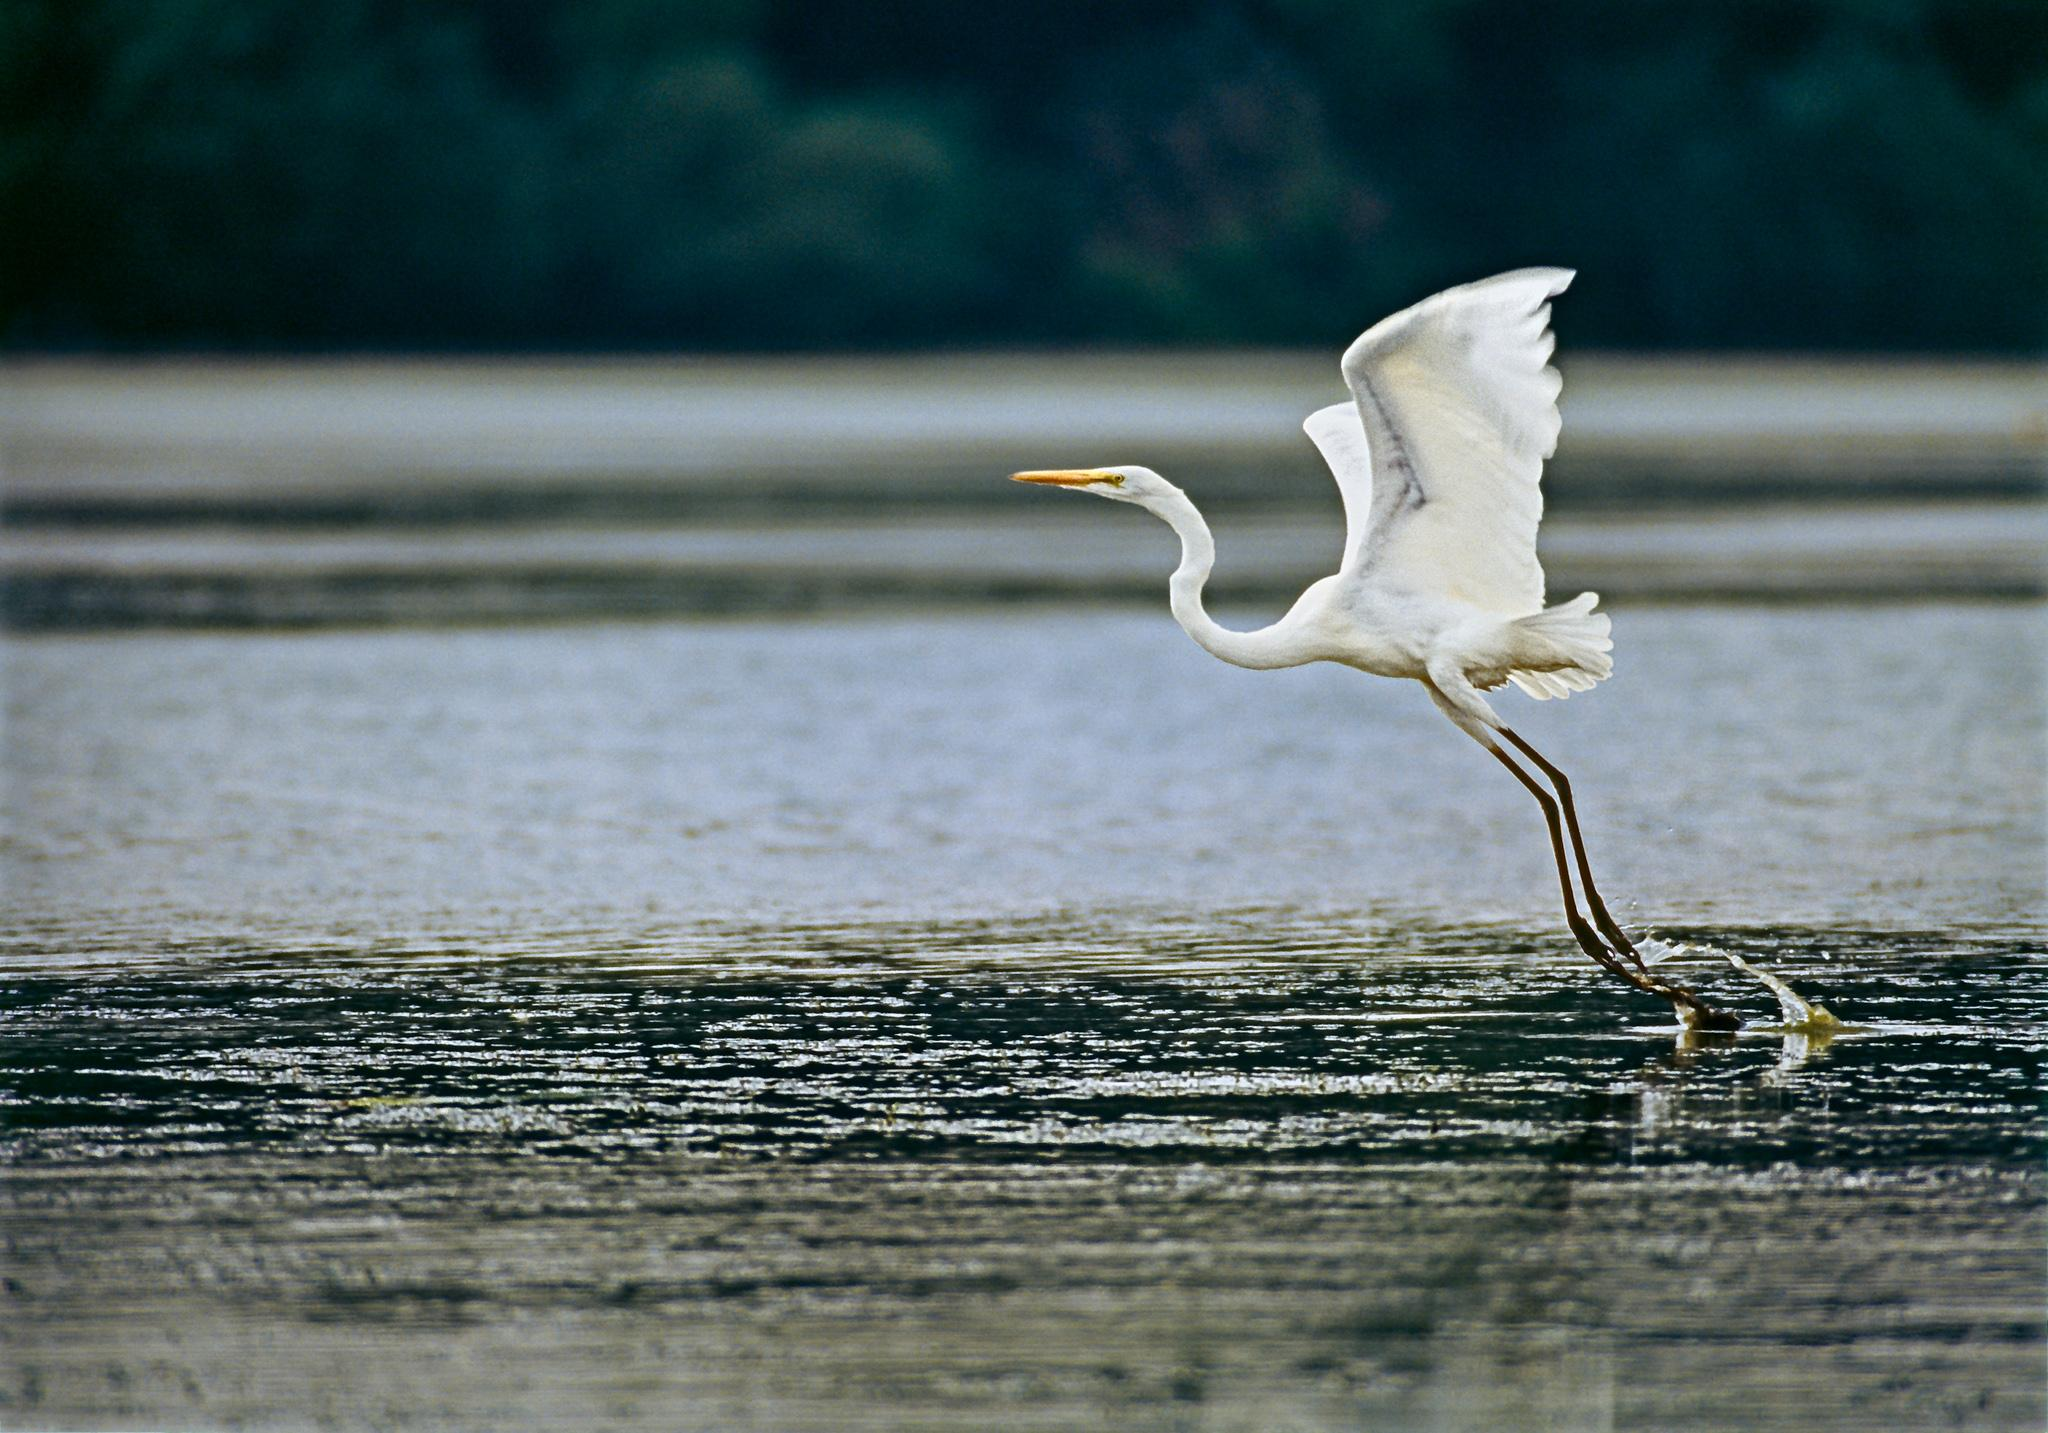 A great egret takes flight from the waters of McGinnis Slough near Orland Park, Illinois in Cook County Forest Preserves.